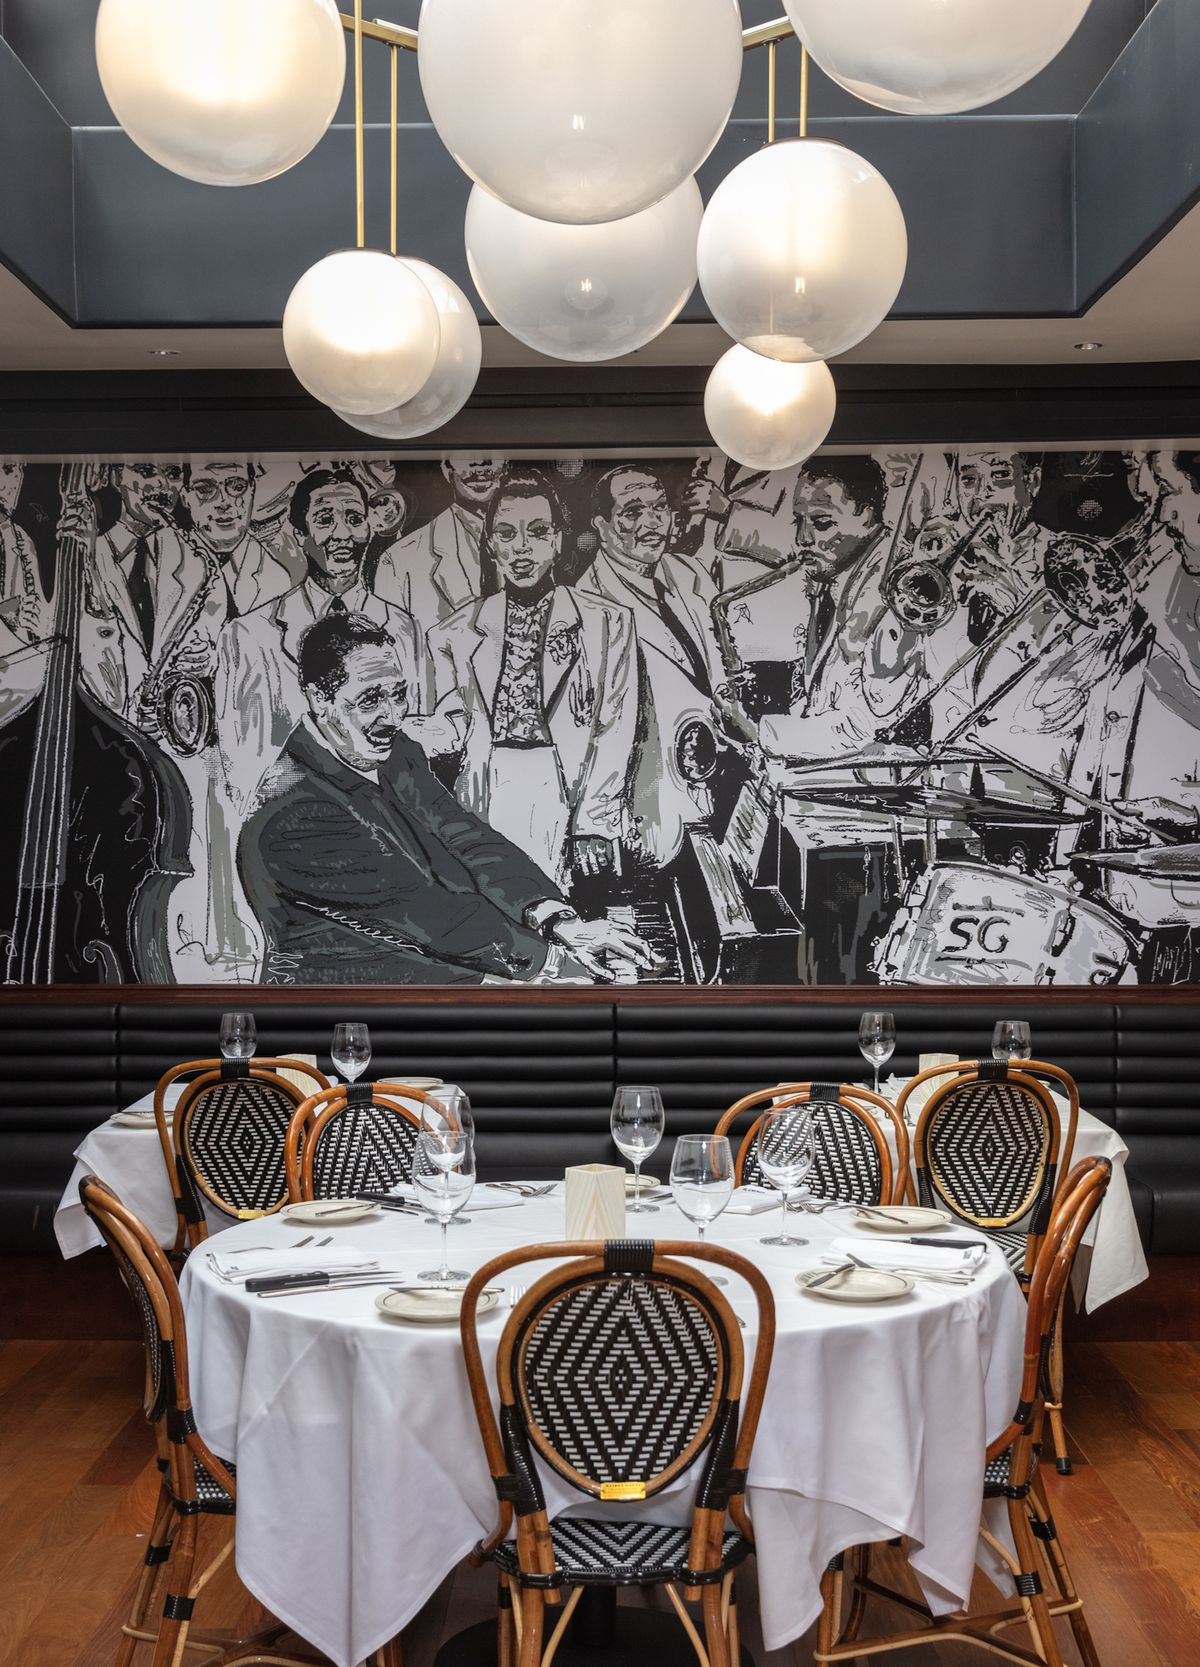 A black and white jazz mural inside an upscale restaurant with white tablecloths.